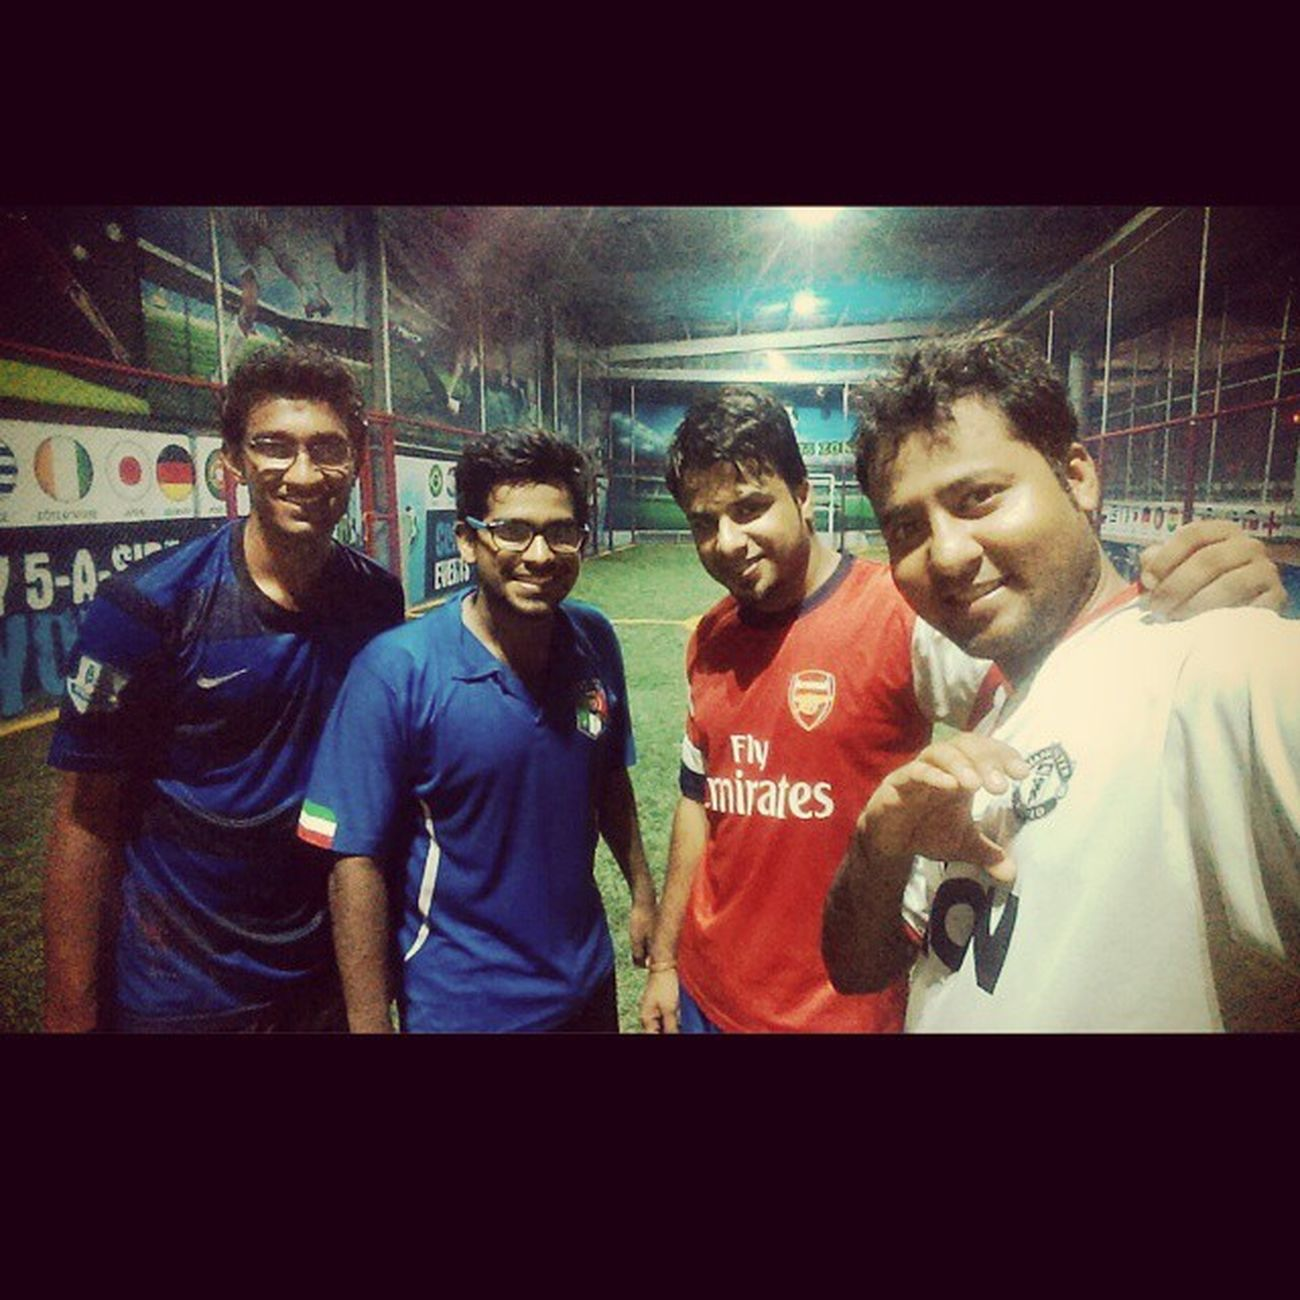 After Game Selfie. ⚽ Brothers. 😄 Well Played. 😎 AfterGameSelfie Brothers Wellplayed ;)